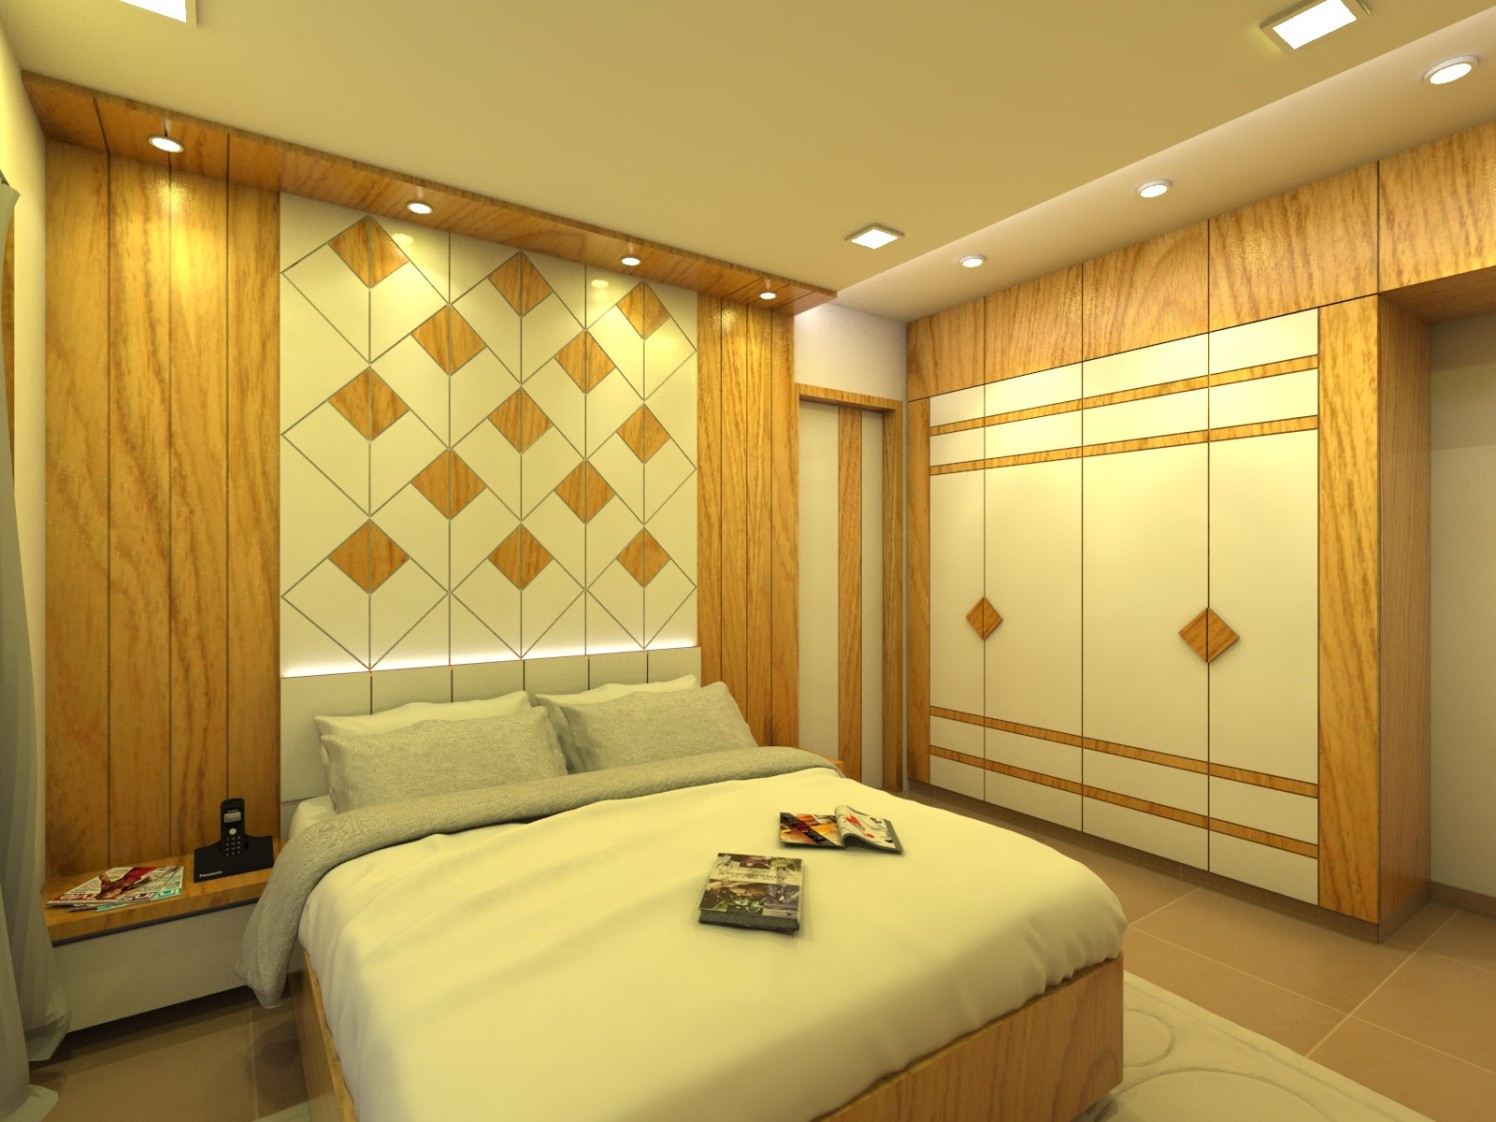 Bedroom With Queen Sized Bed and Wooden Panels by Umesh Vishwakarma Bedroom Contemporary | Interior Design Photos & Ideas